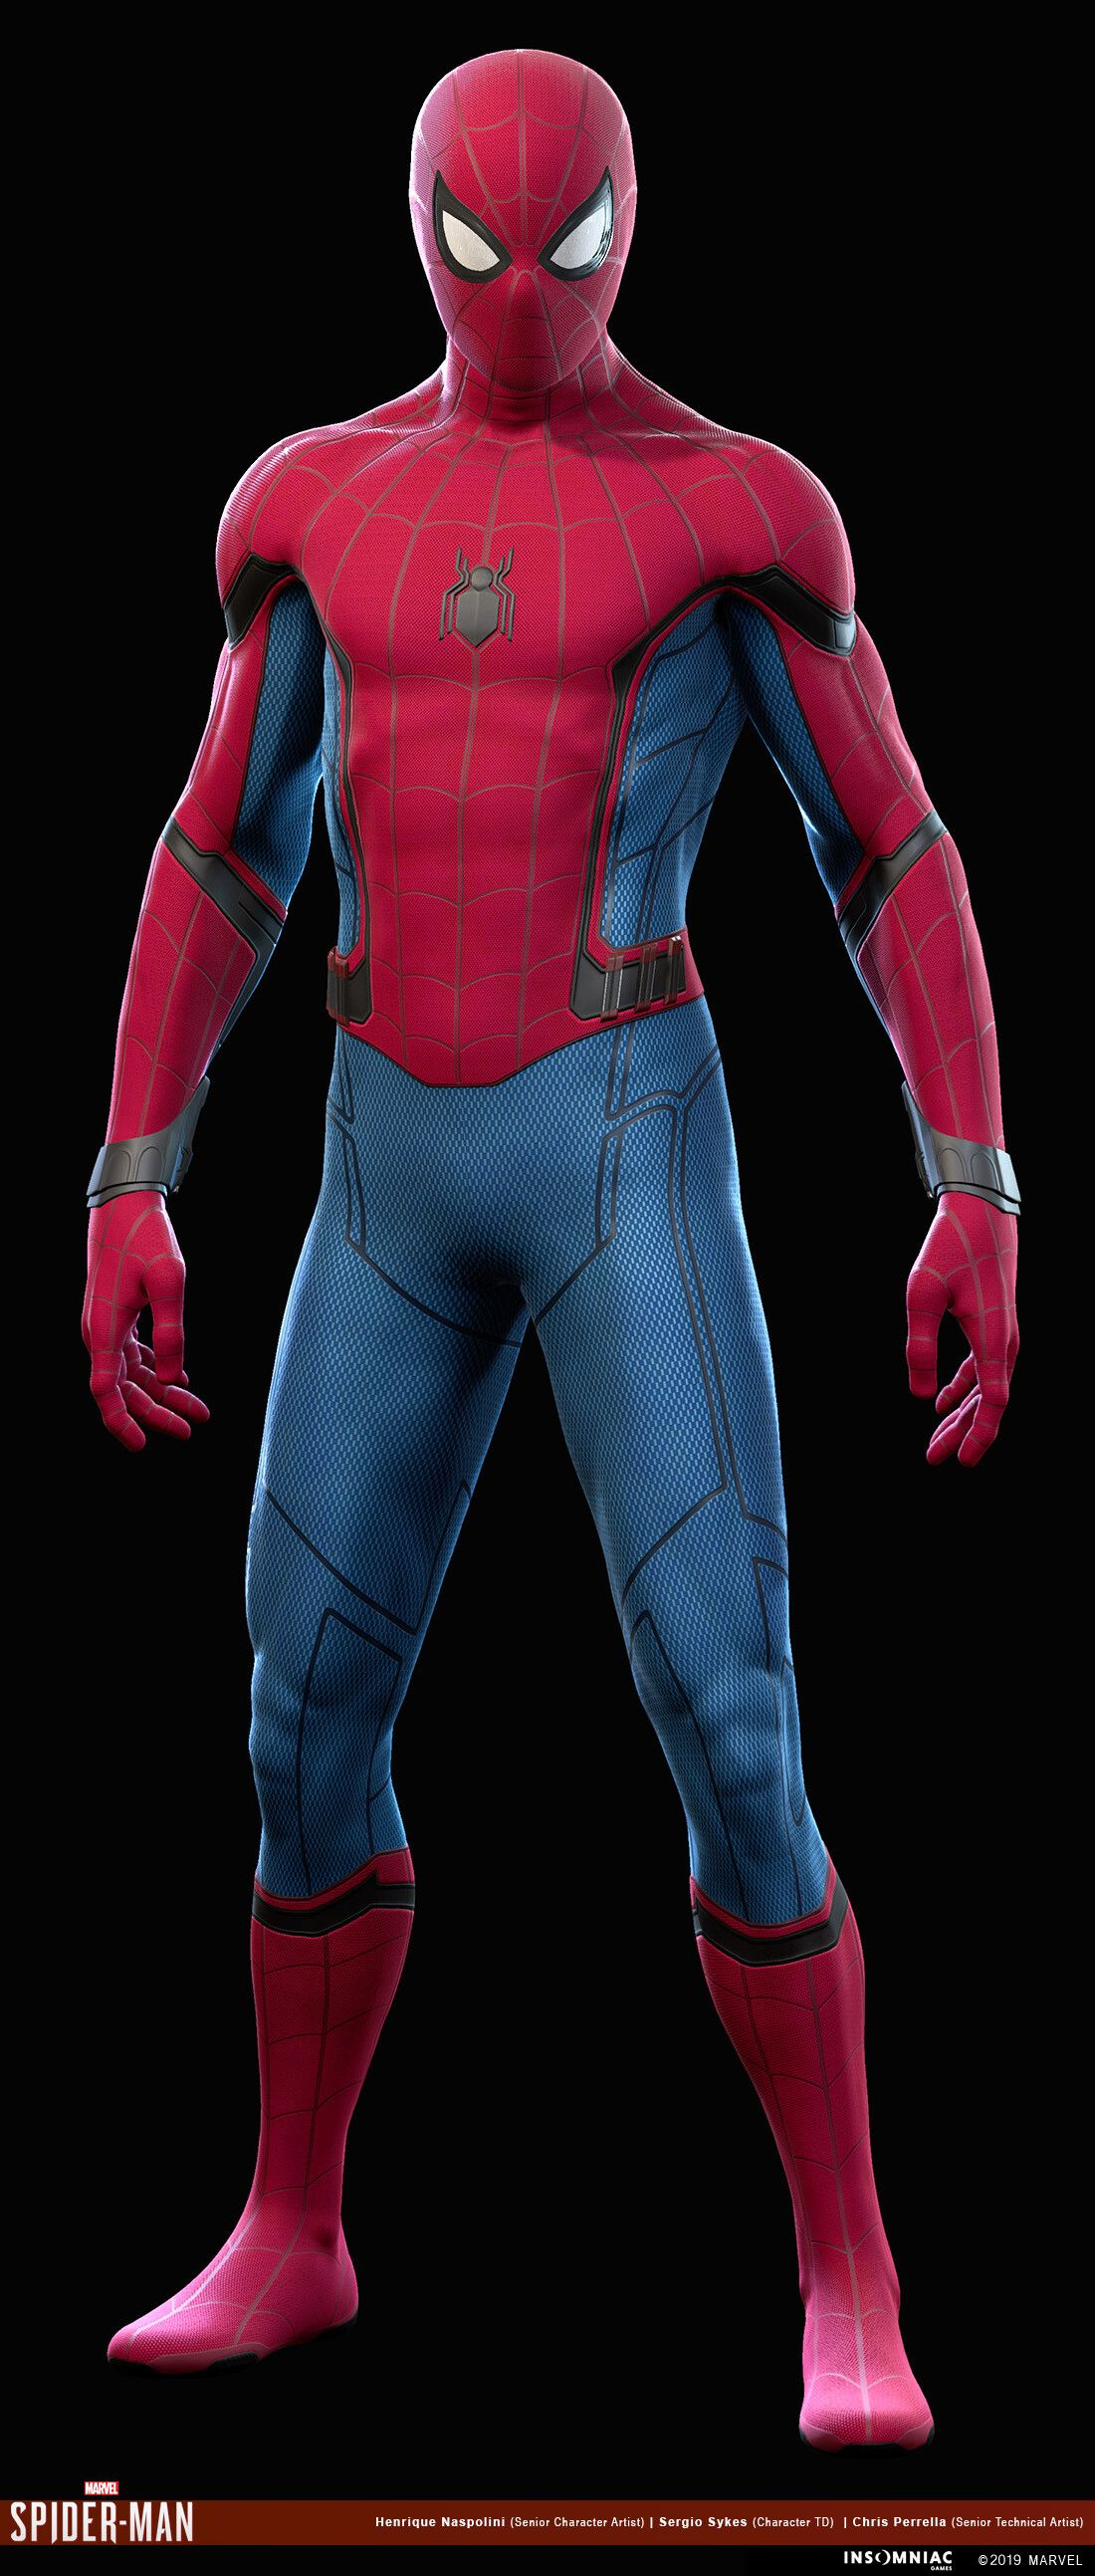 Spider-Man: Heroes and Villains/Stark Suit